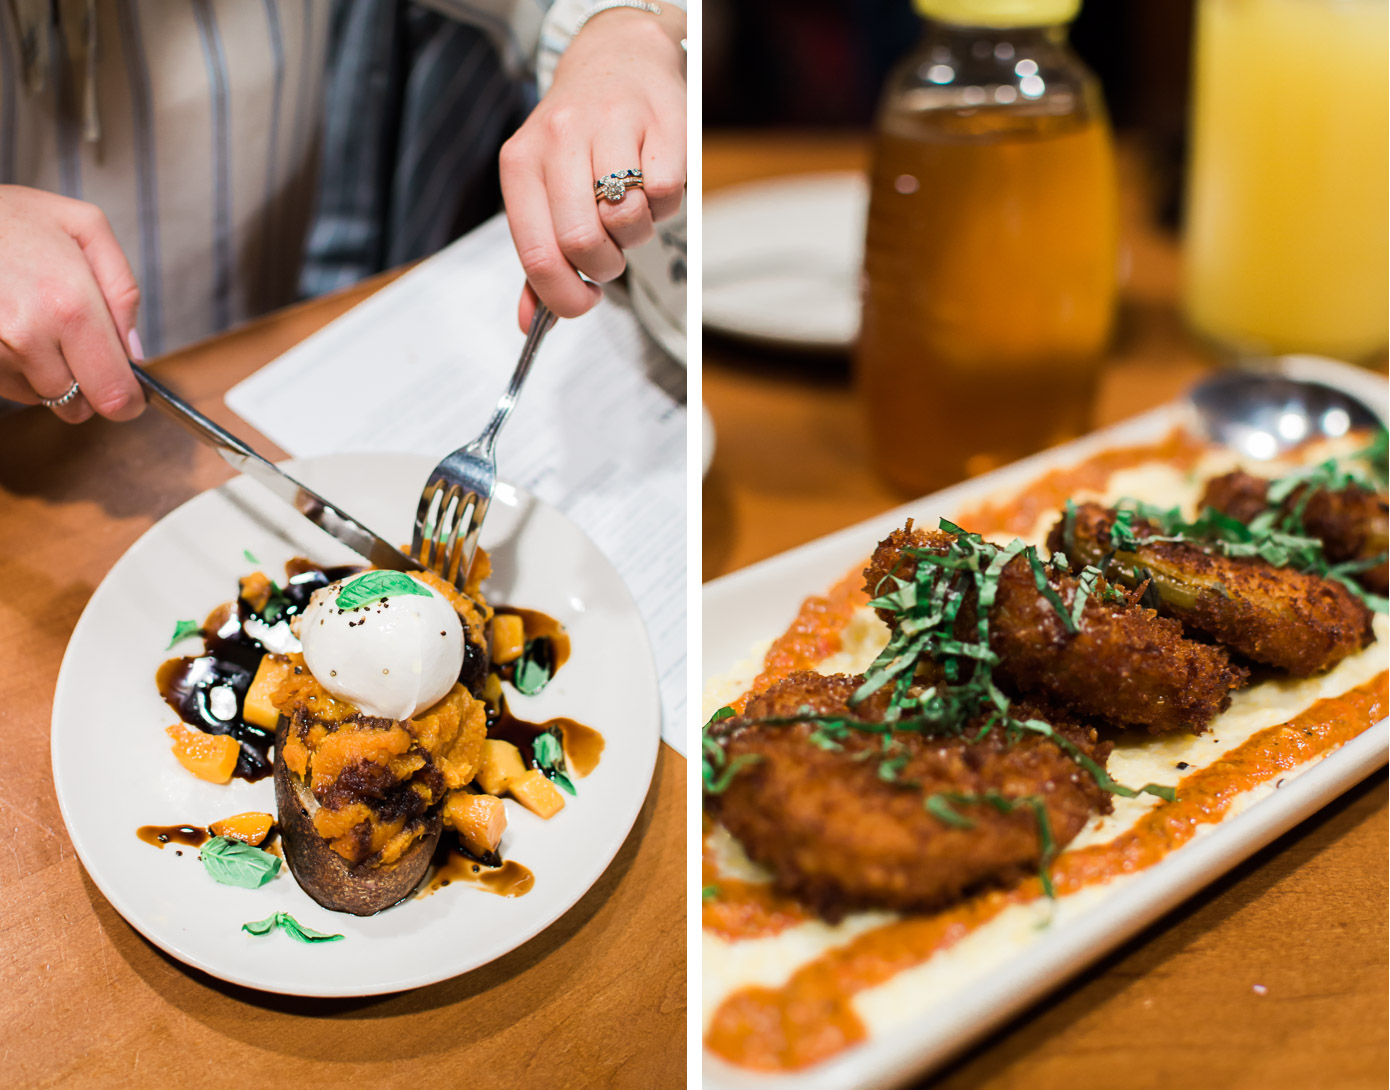 Asheville Food Guide | Asheville Travel Guide | Louella Reese Life & Style Blog